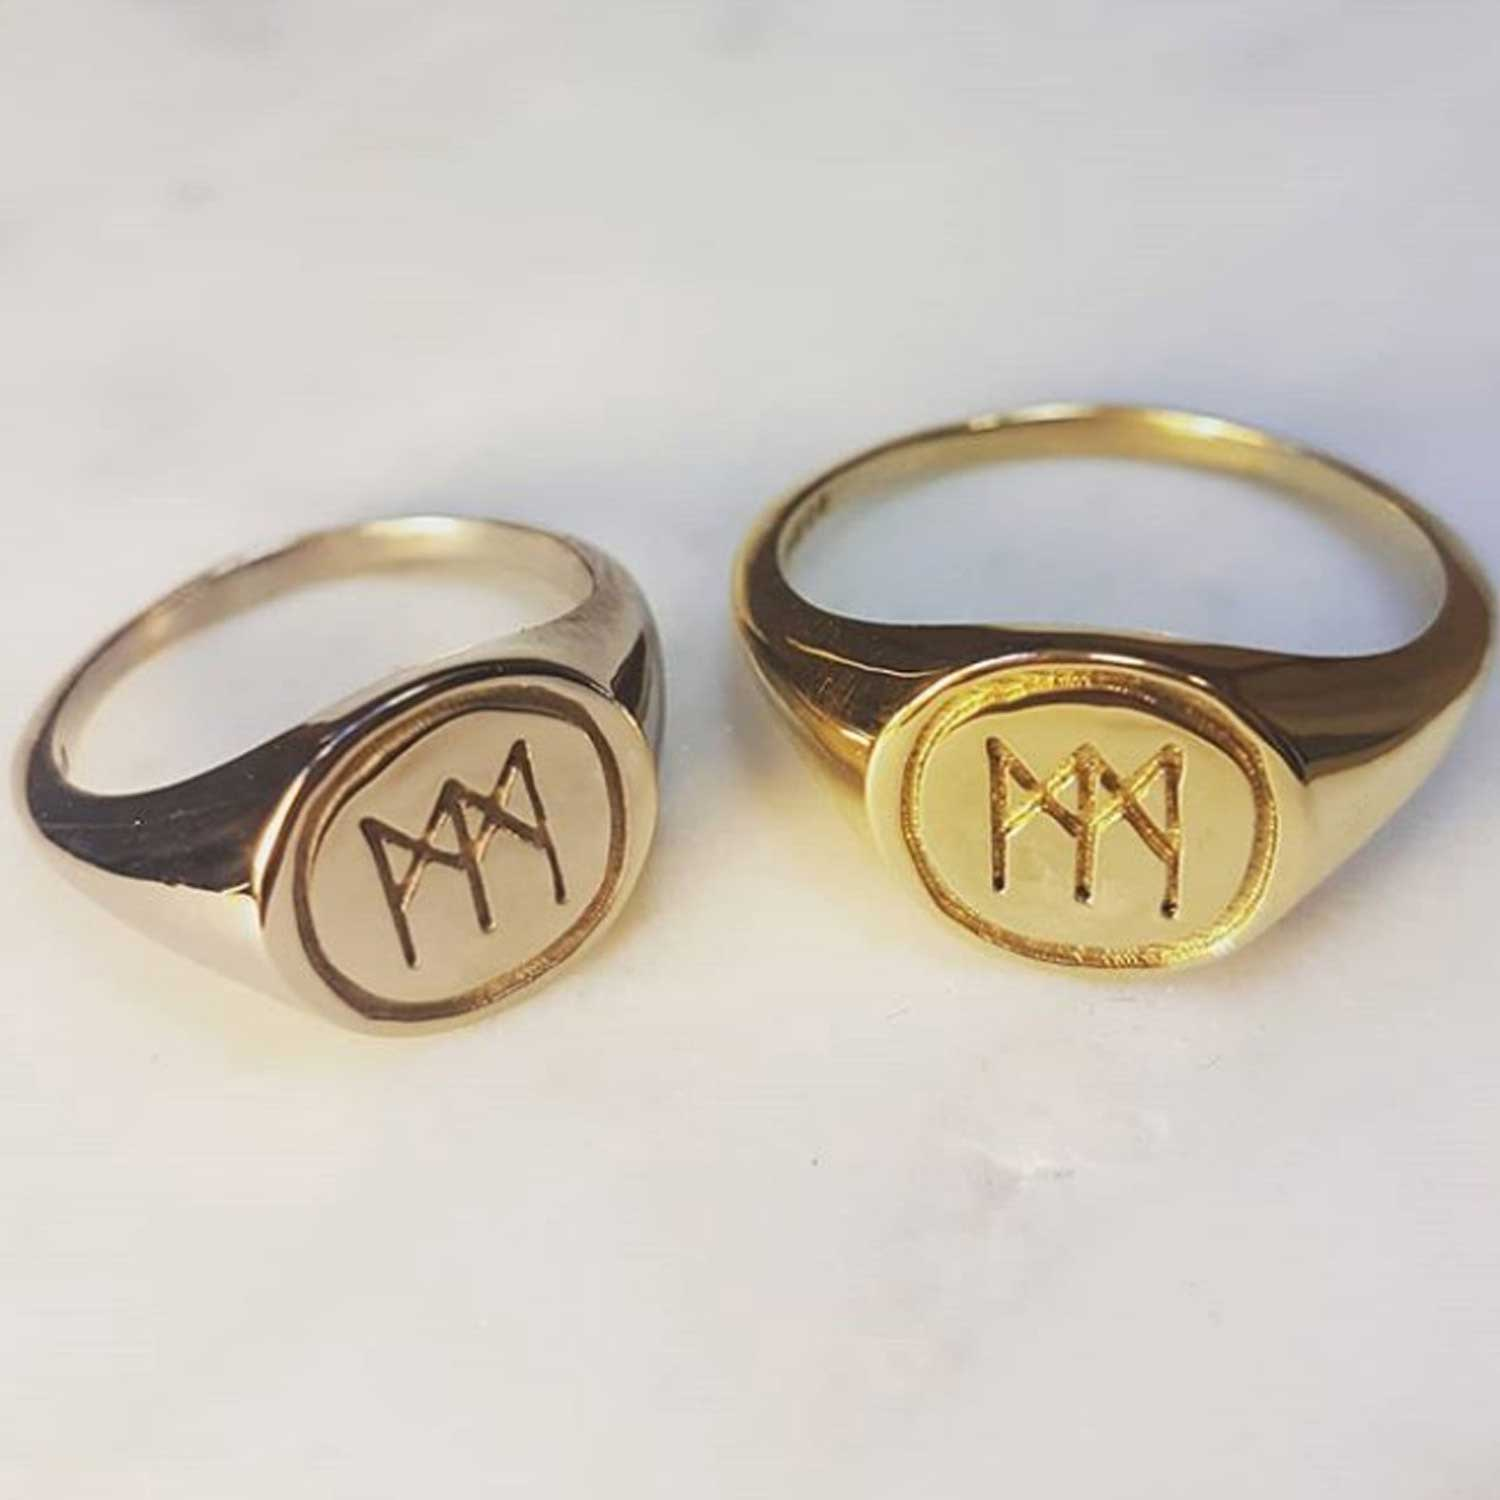 "Personalised Signet Rings - We created these 18ct gold signet rings for Iona & Joss, who wanted their initials engraved in a logo they designed themselves as alternate engagement rings.""We love them so much! Thank you :)"" - Iona McMurphy"